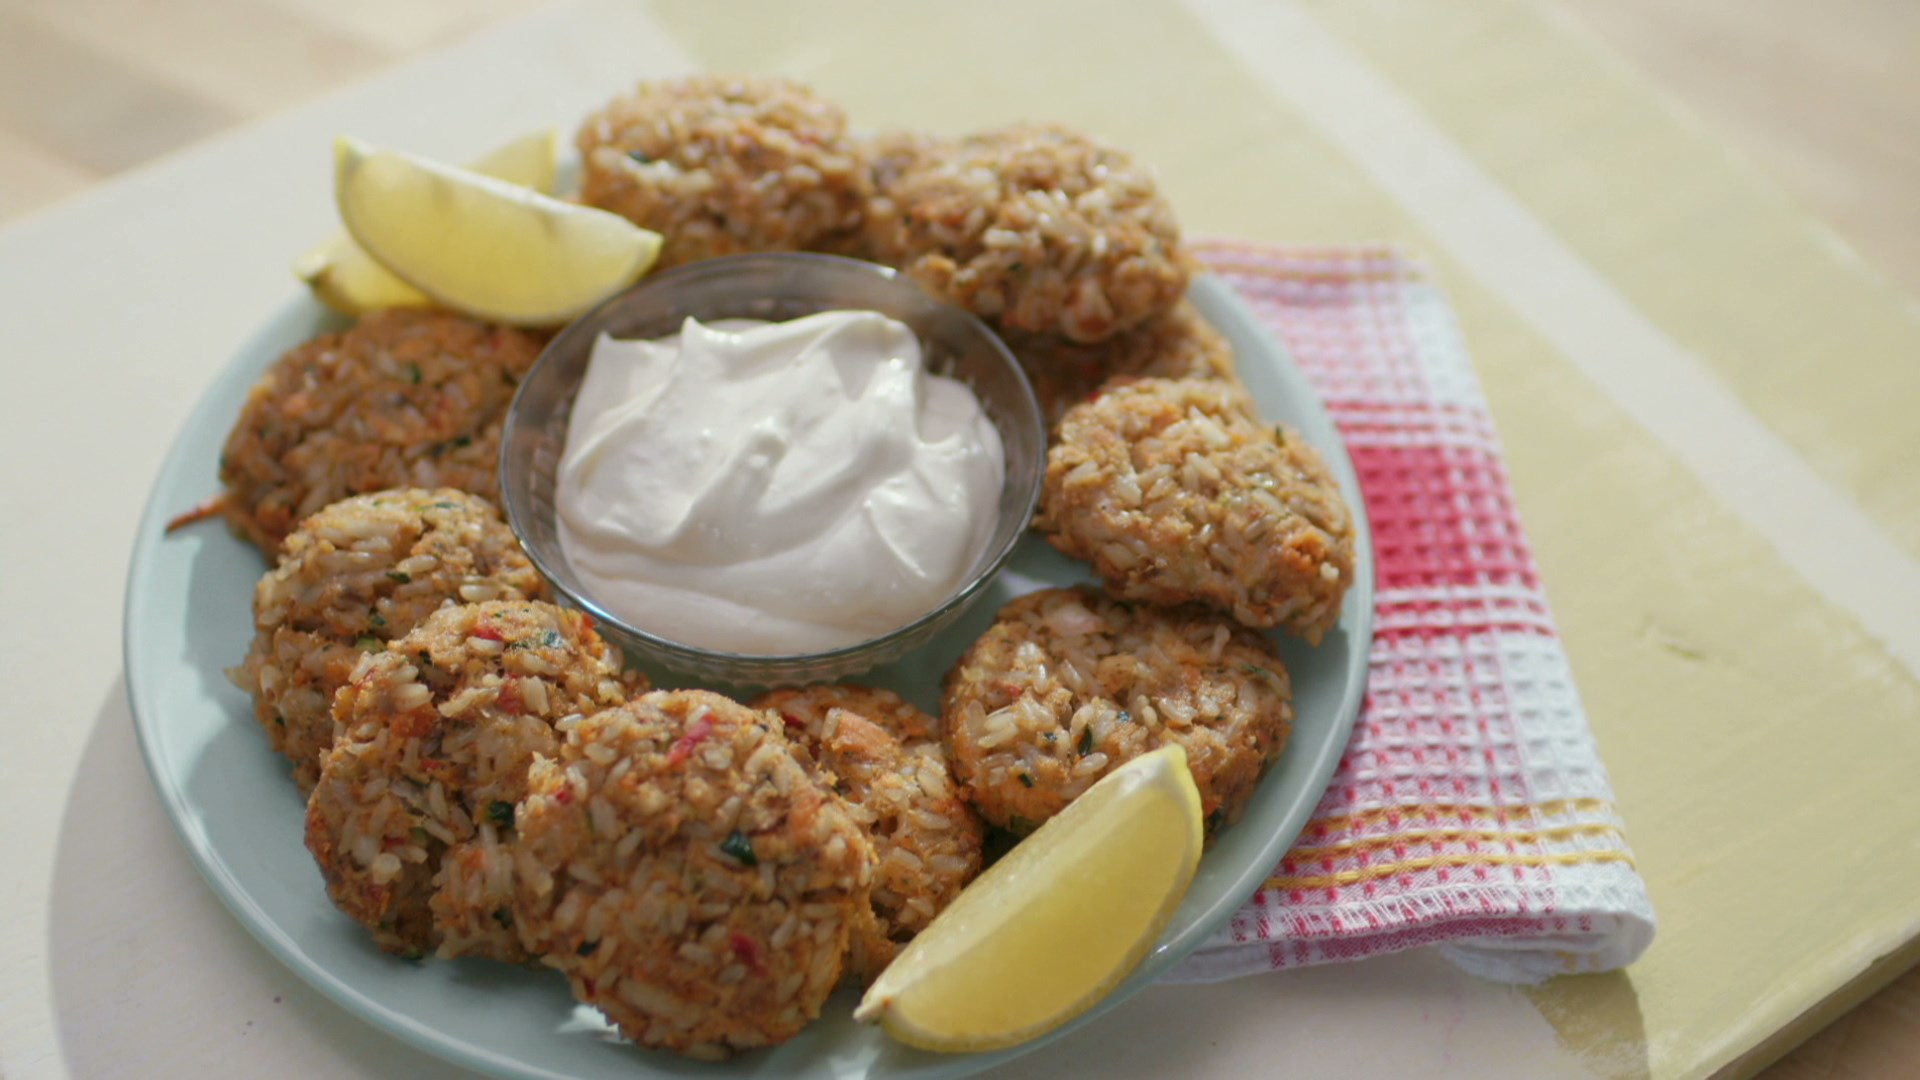 croquettes de riz au saumon cuisine fut e parents press s On saumon cuisine futee